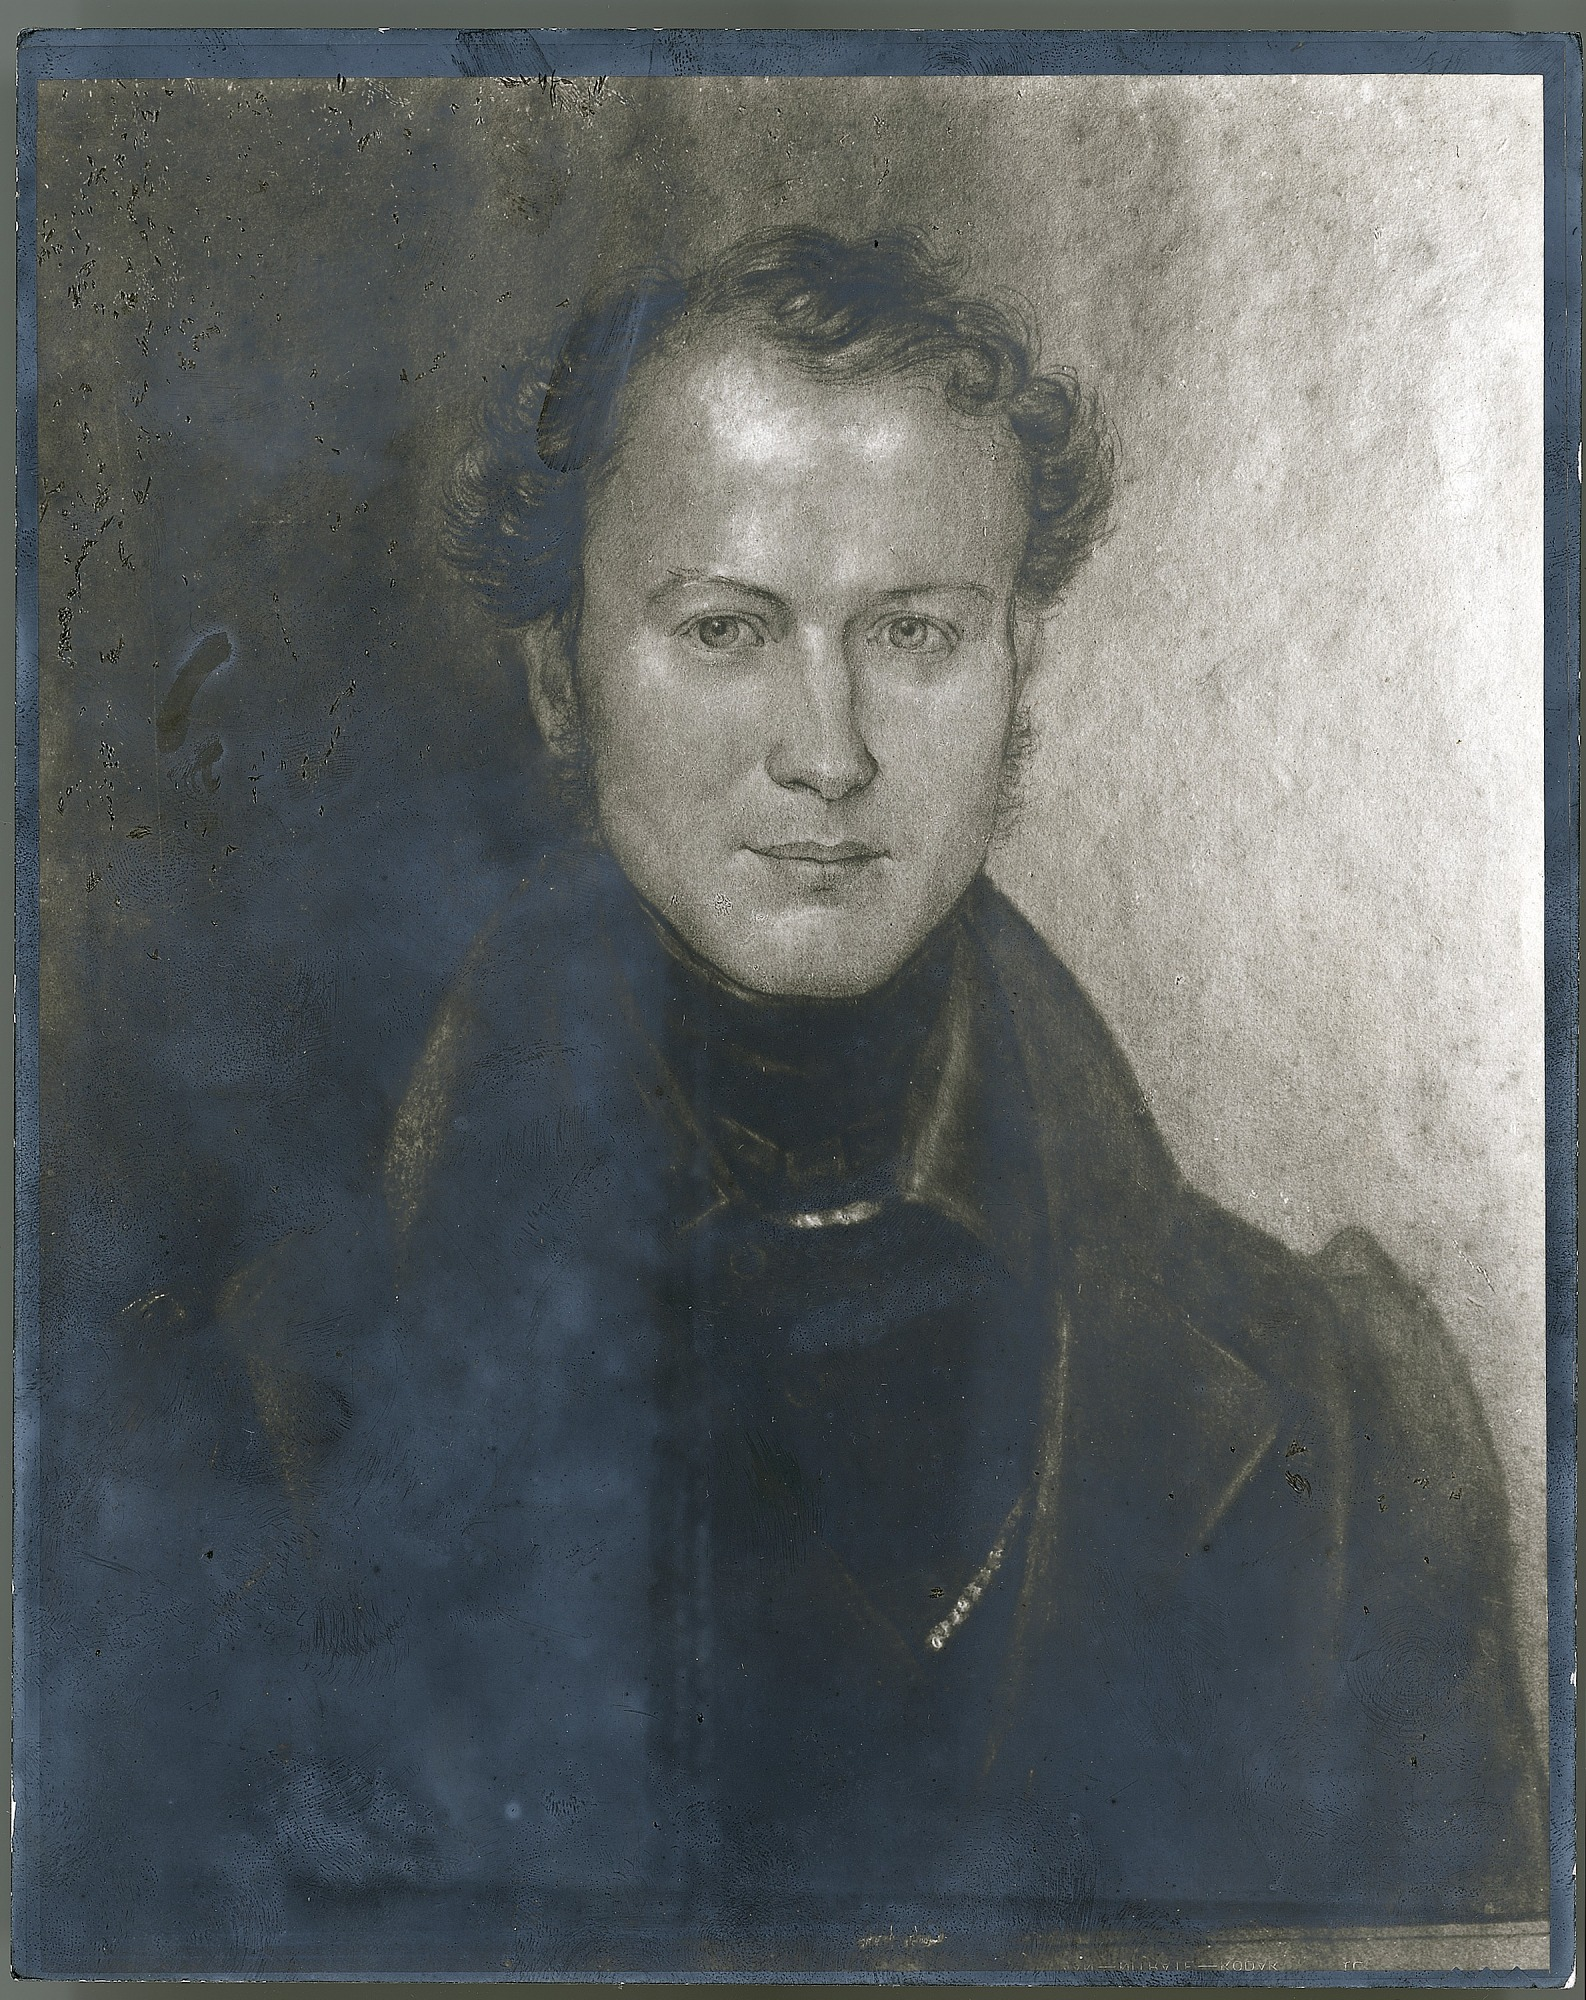 William Dunlop Brackenridge, by Unknown, c. 1830s, Smithsonian Archives - History Div, 2005-1378.